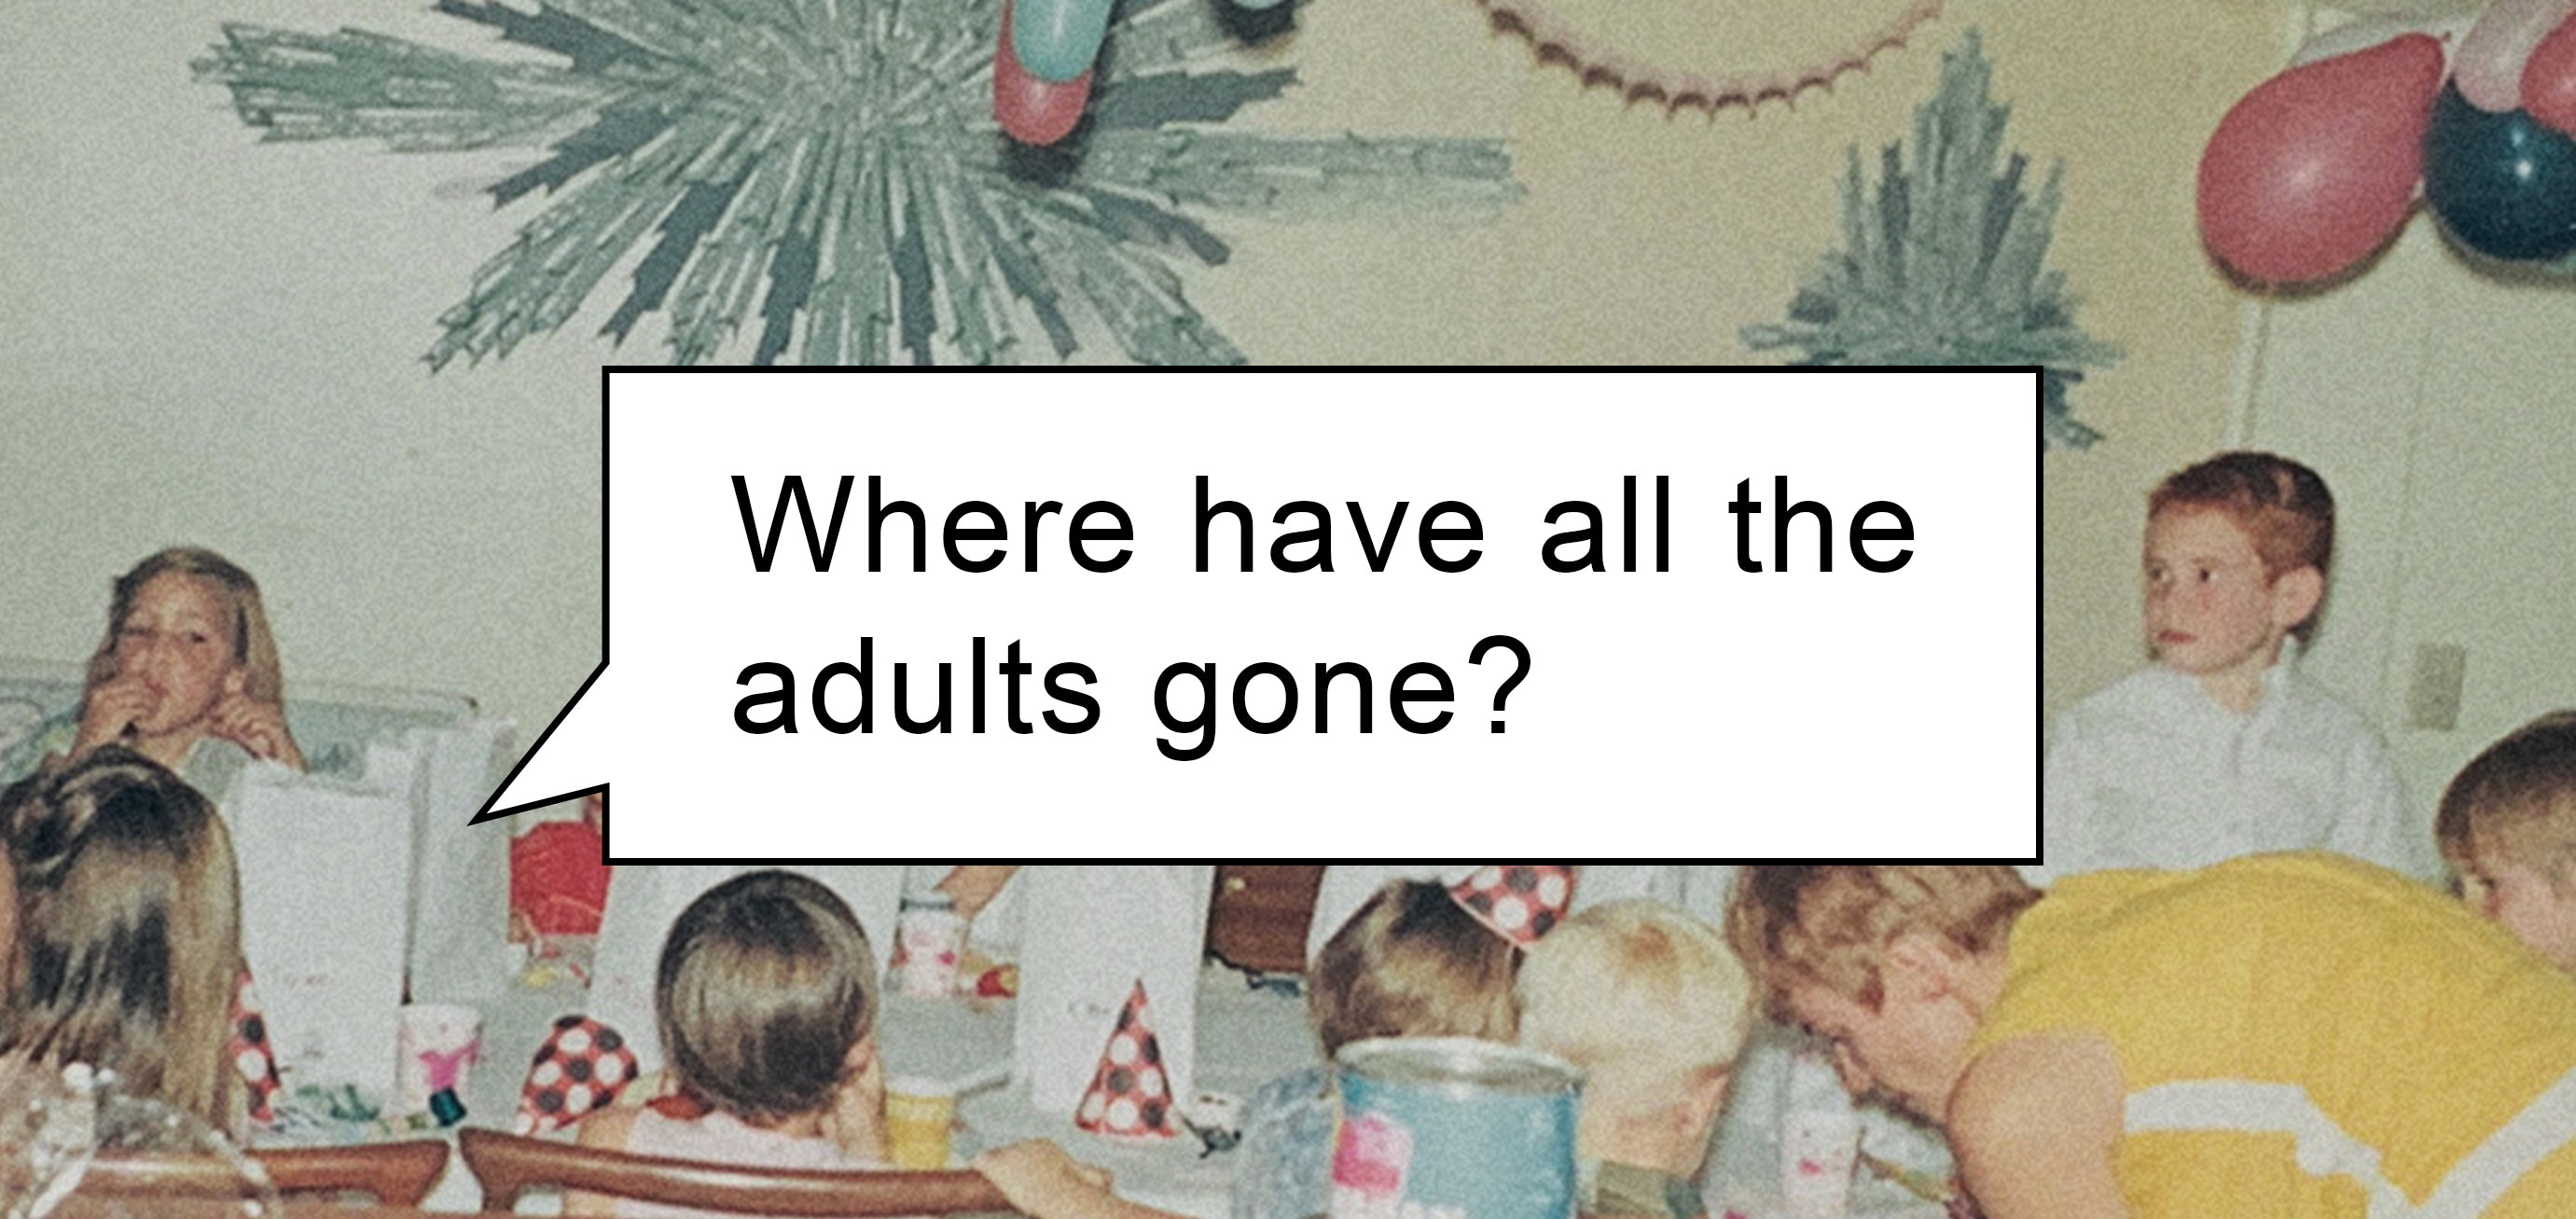 Where have all the adults gone?